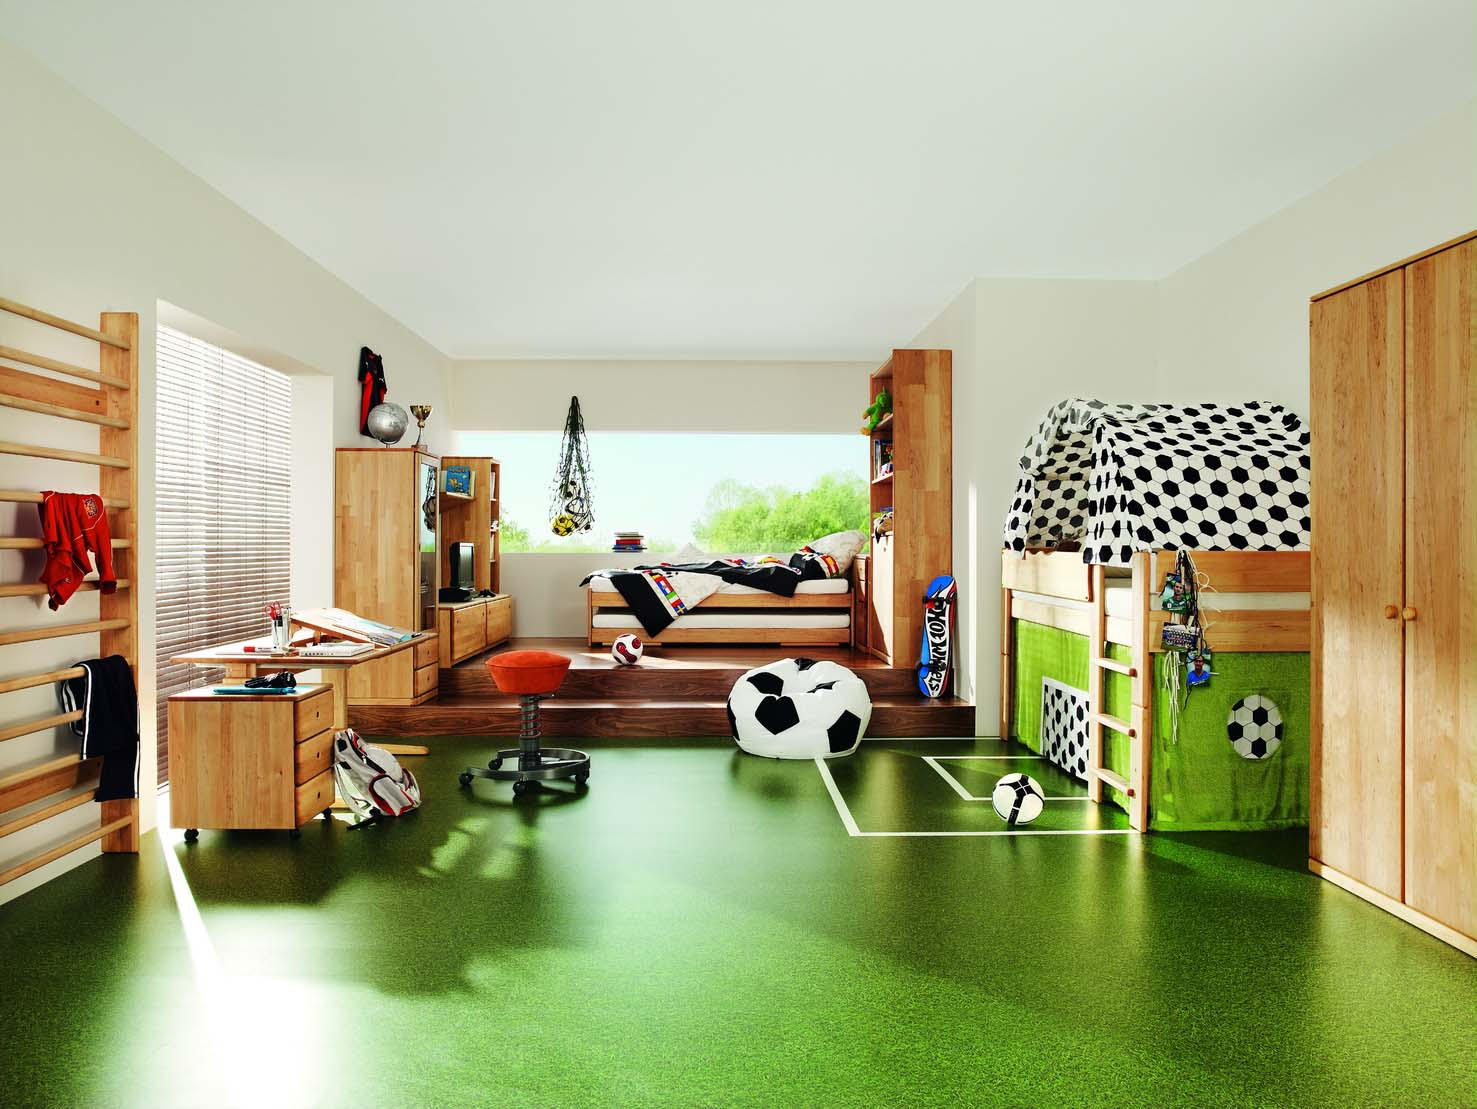 Contemporary childrens room with green flooring